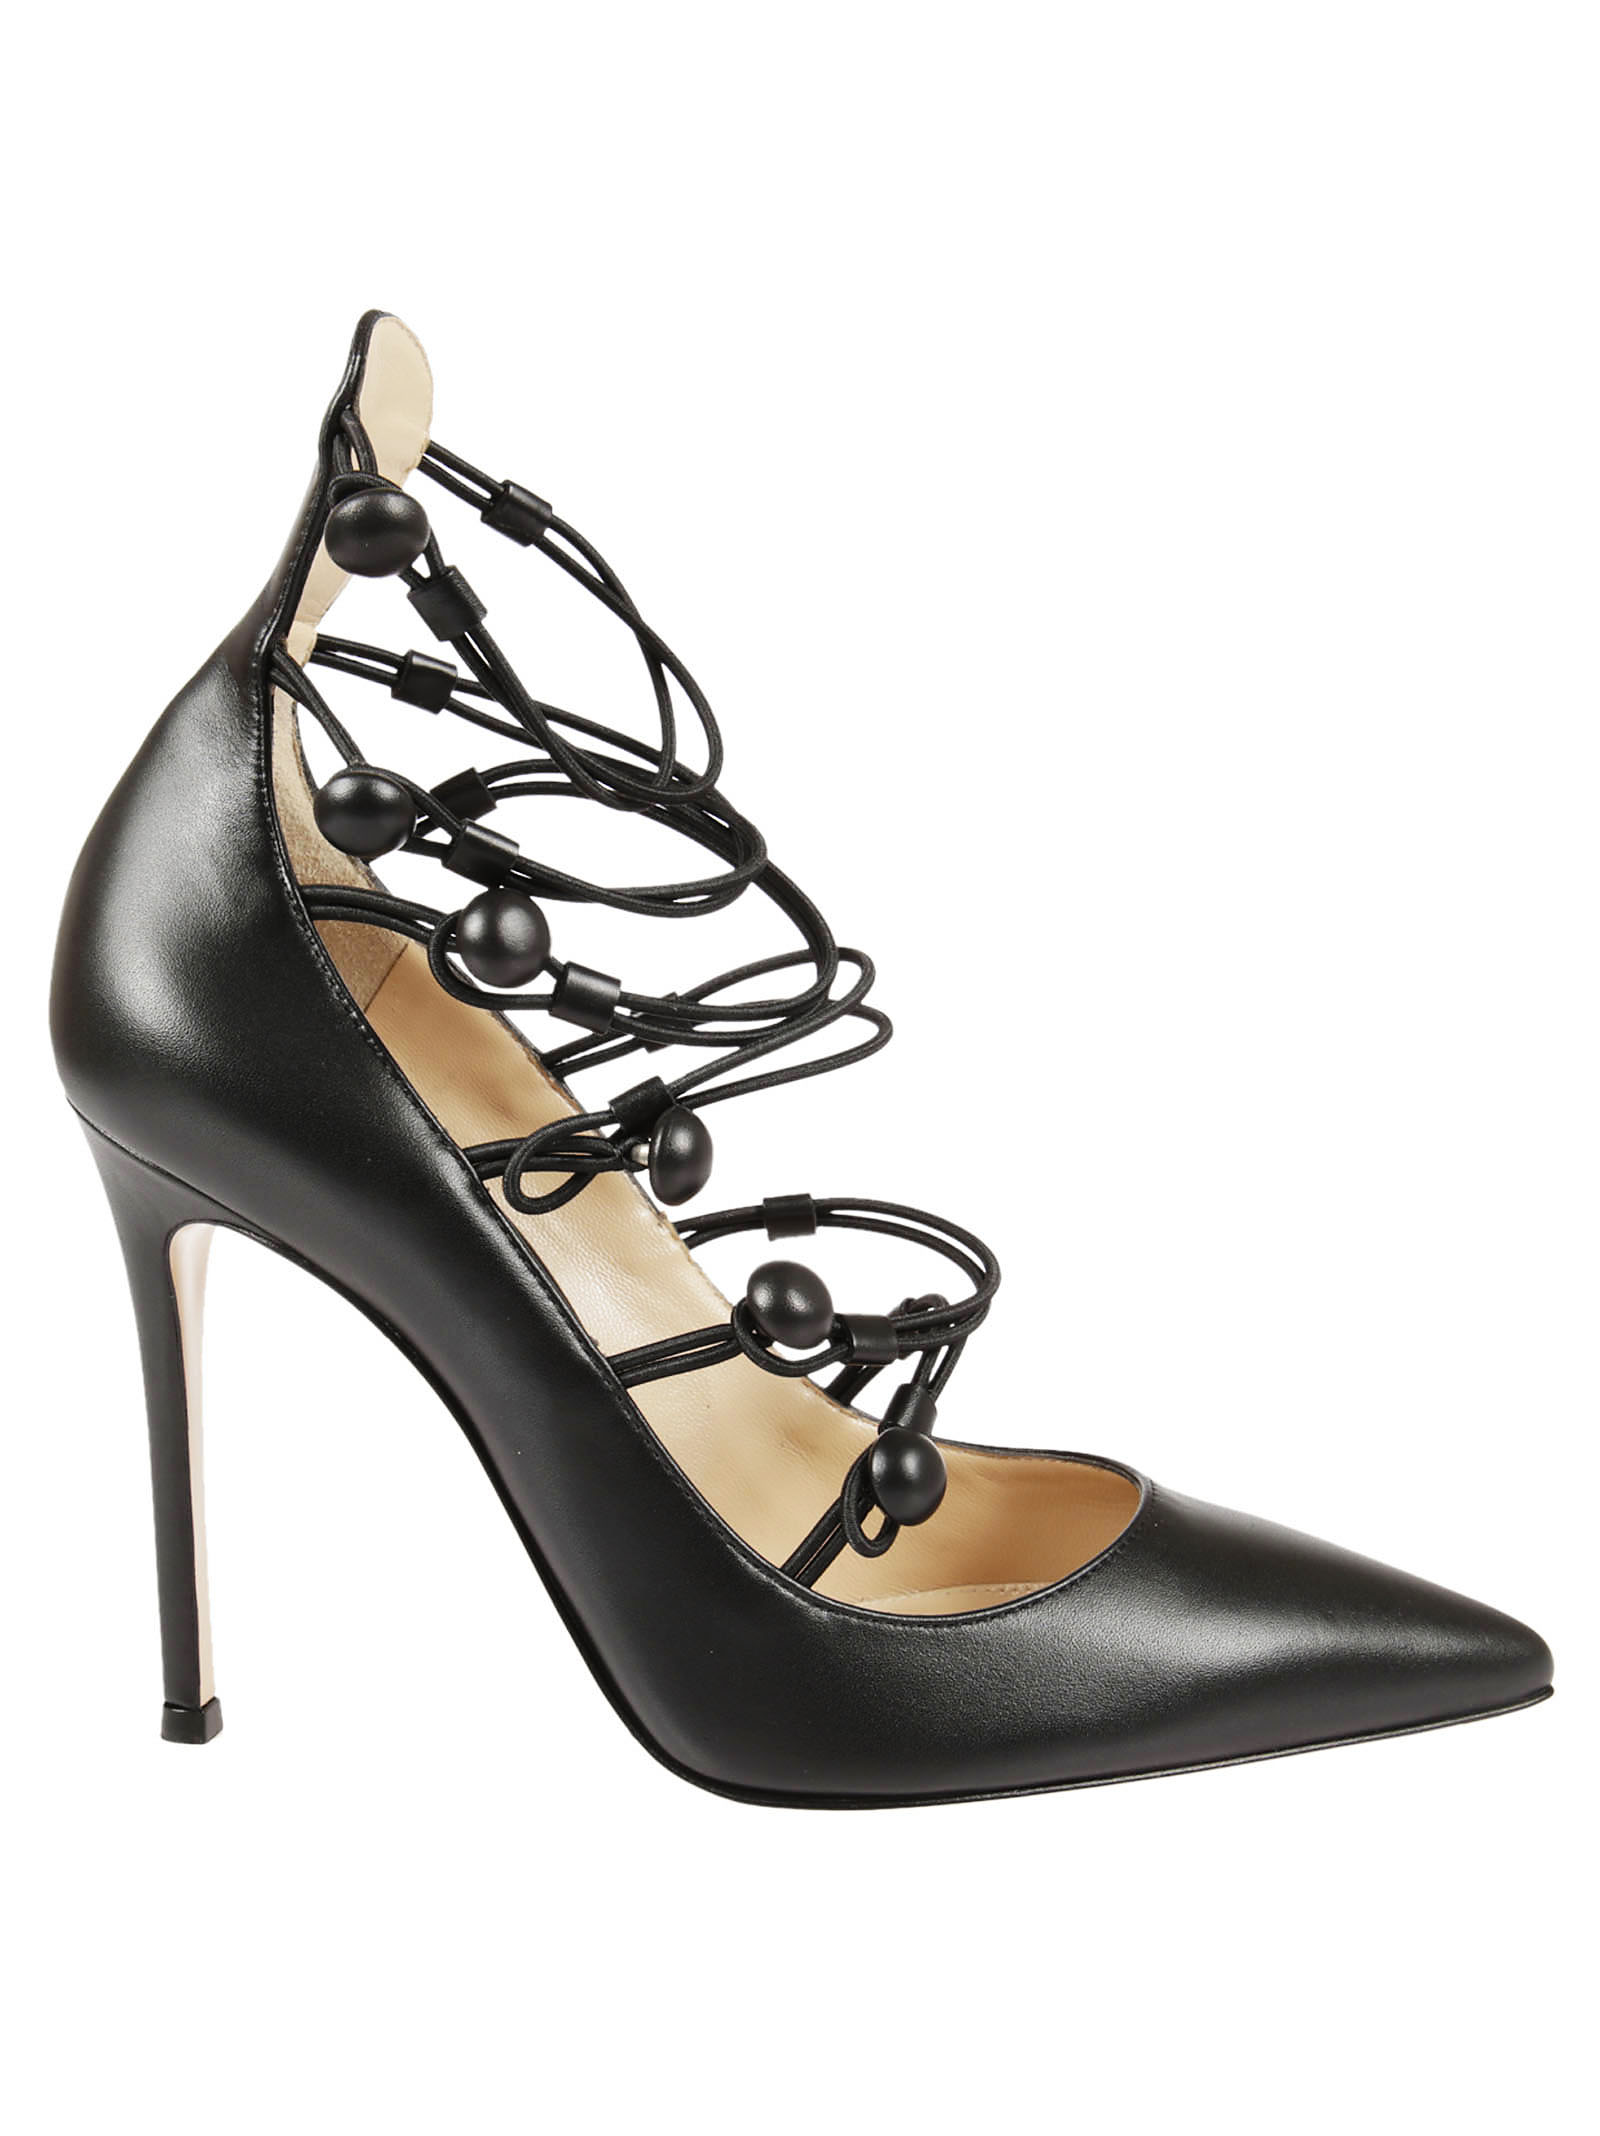 Gianvito Rossi Gianvito Rossi Cut-out Leather Pumps